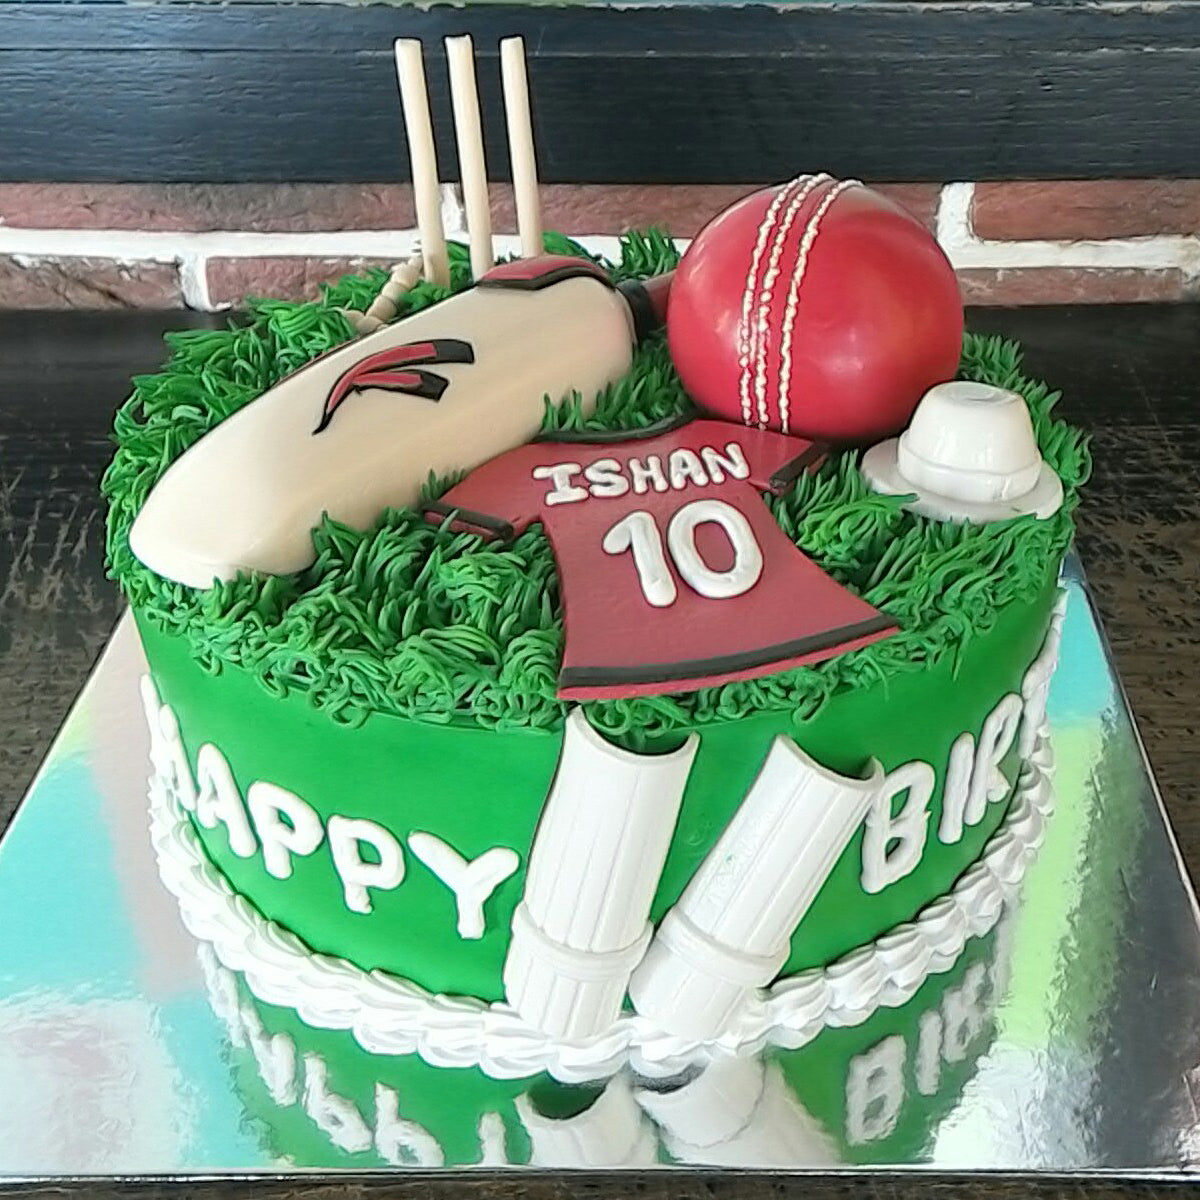 Cricket Lover Cake - CWD - Arabian Petals